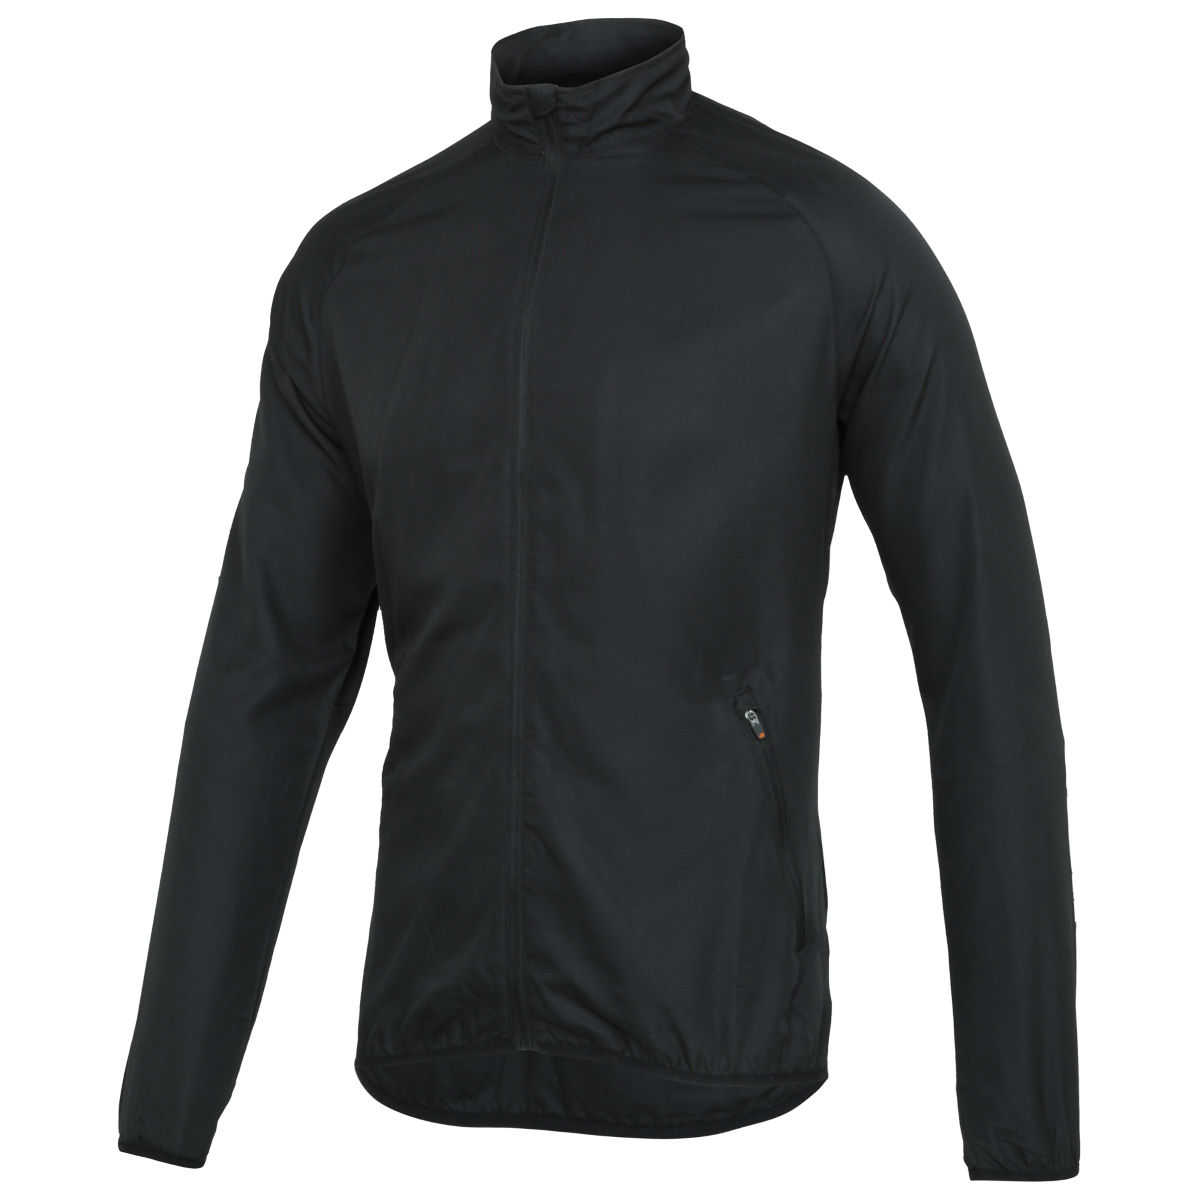 Veste Wiggle Essentials Run - S Noir Vestes de running coupe-vent